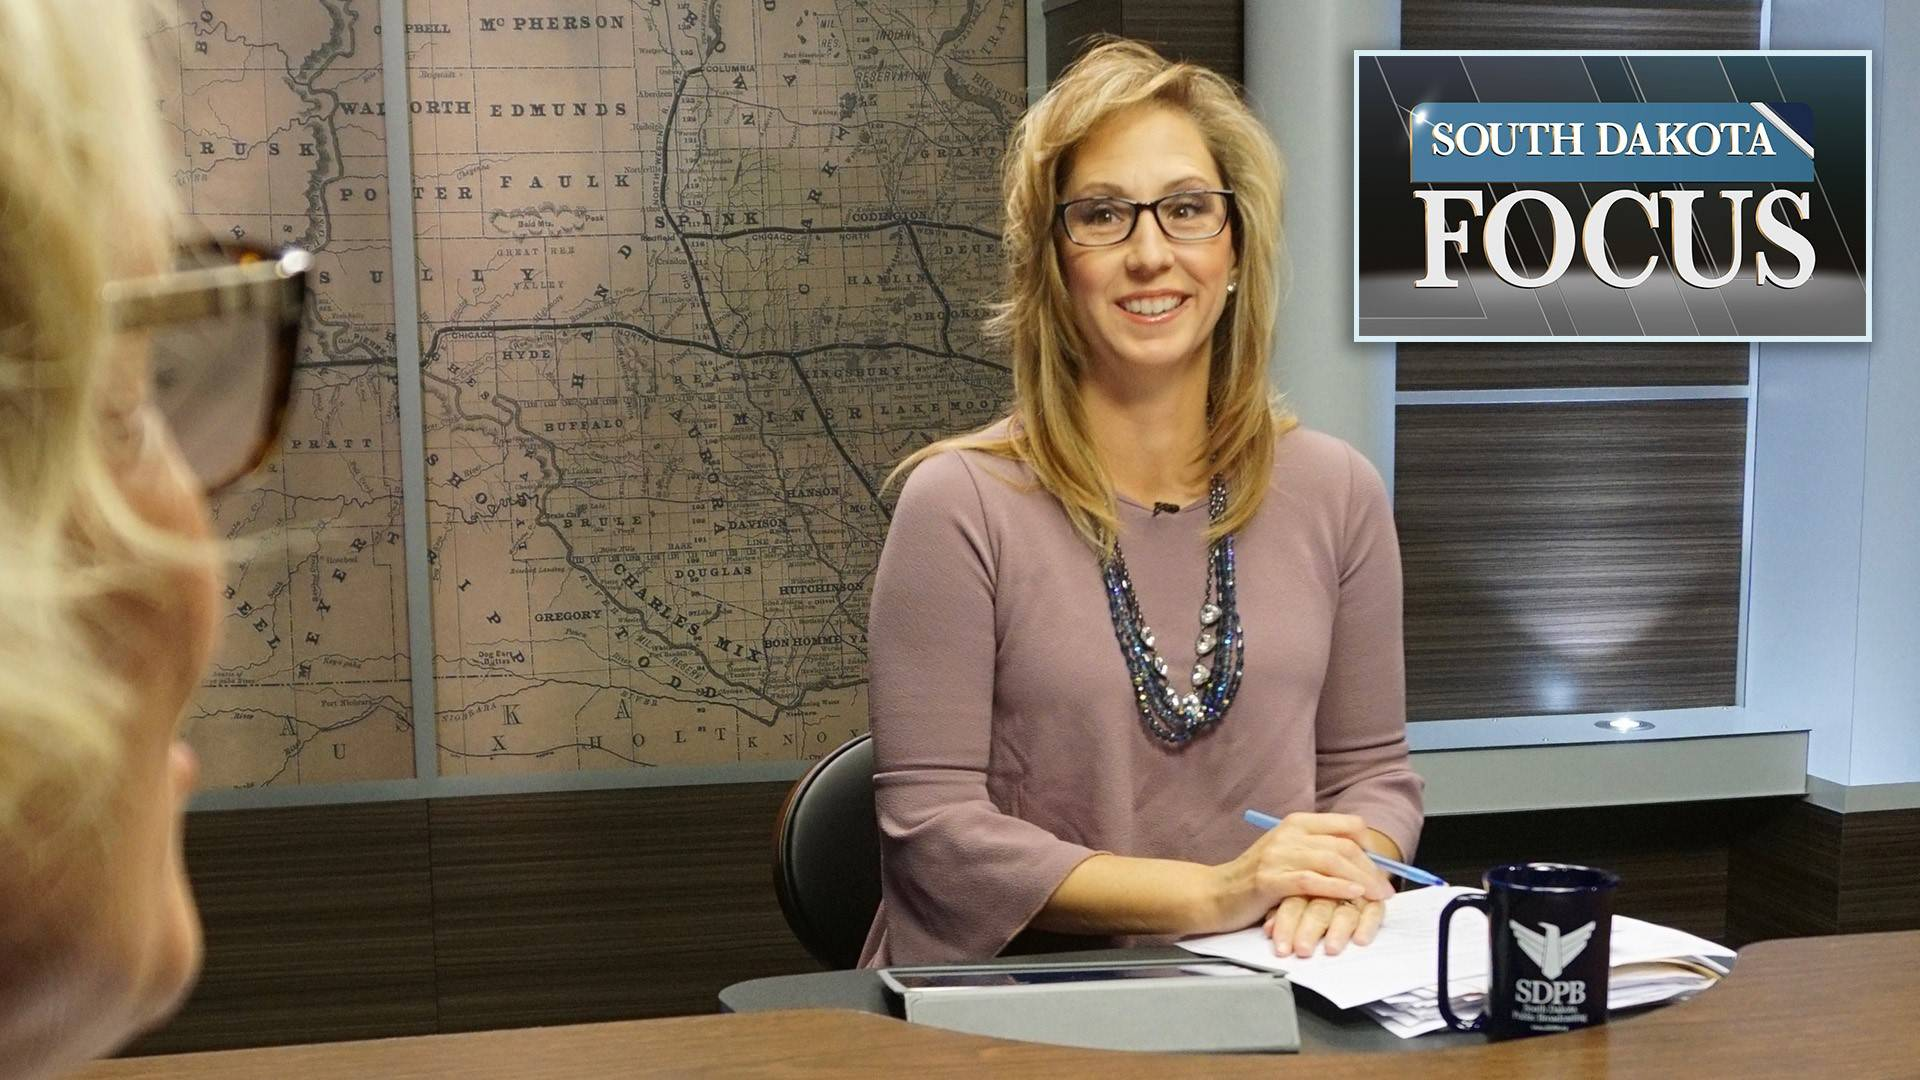 South Dakota Focus host